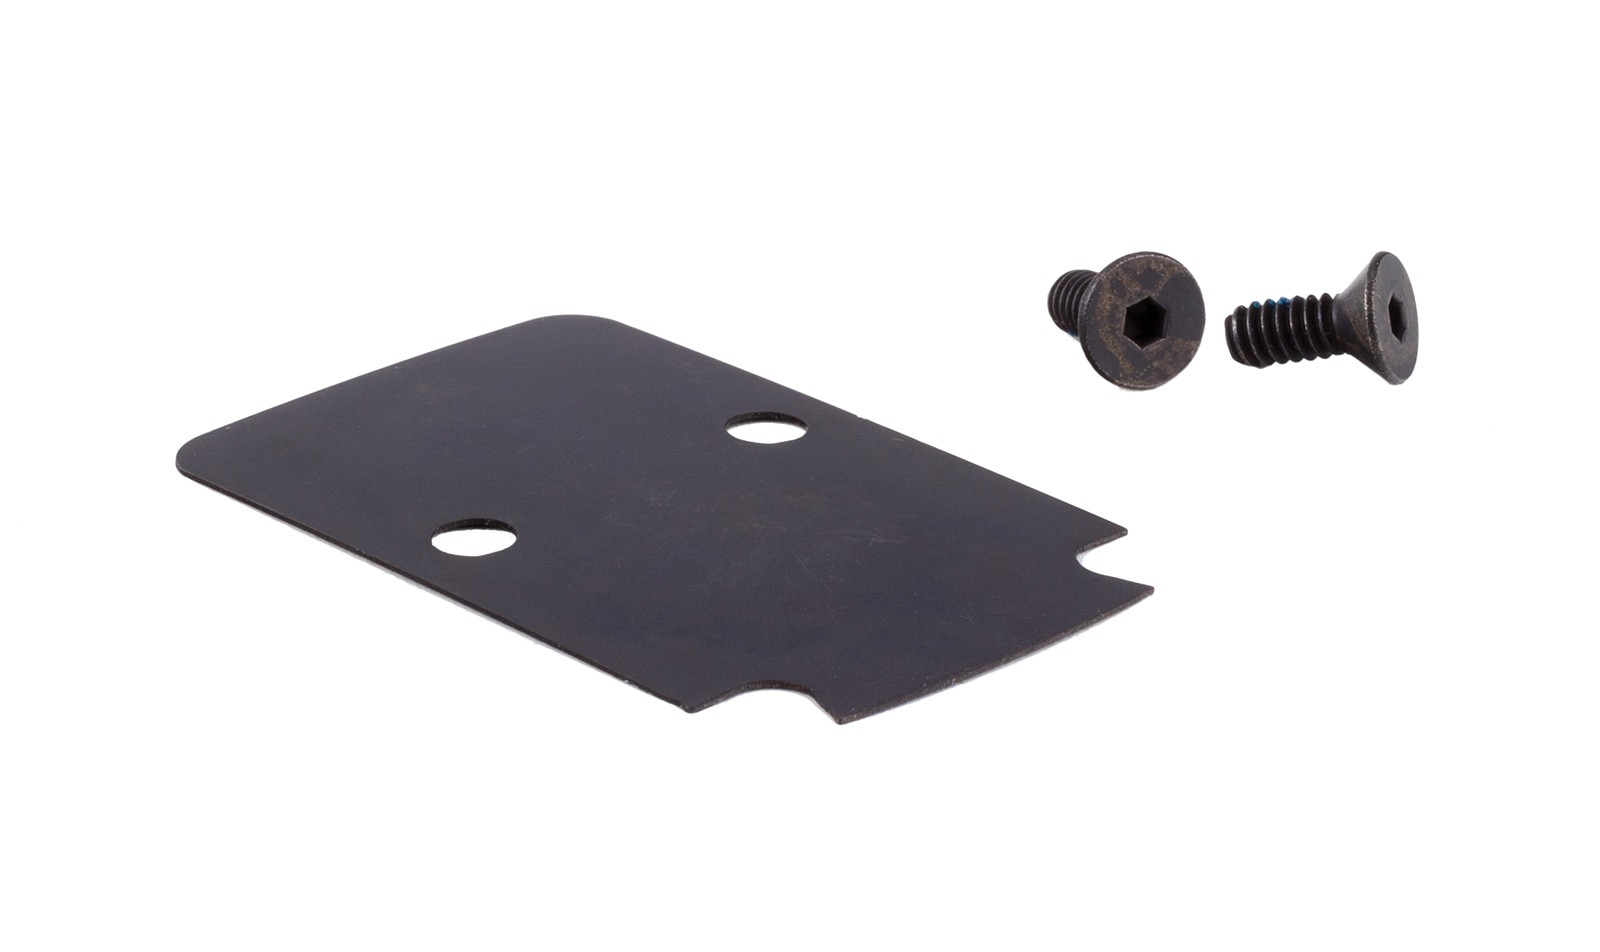 Trijicon RMR®/SRO® Mounting Kit - Fits Glock MOS and Springfield OSP Models